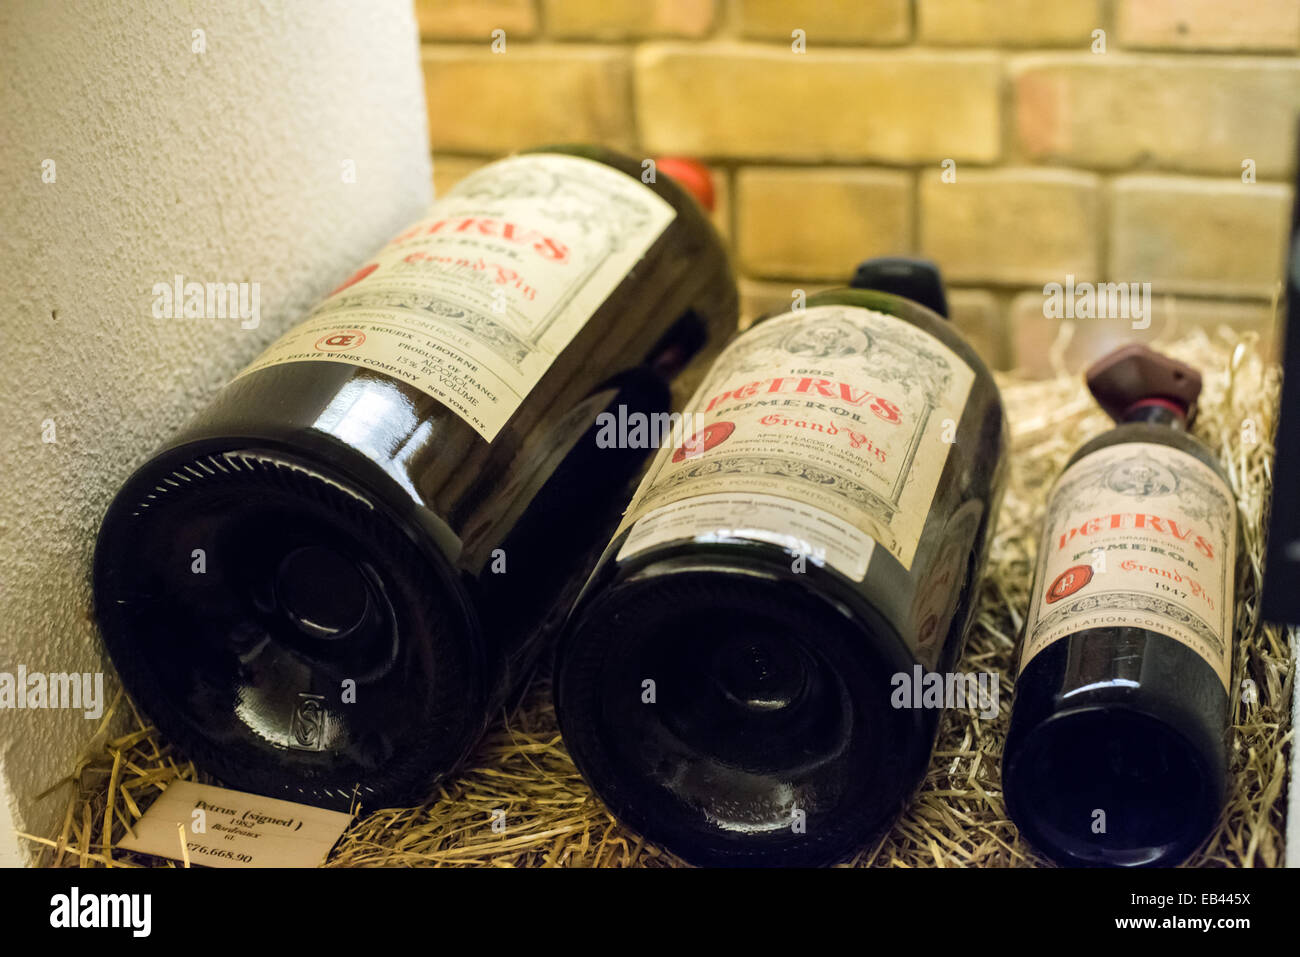 In Imperial Of 1982 Petrus A Jeroboam And Bottle 1947 Shot At Hedonism Wines Davies Street London